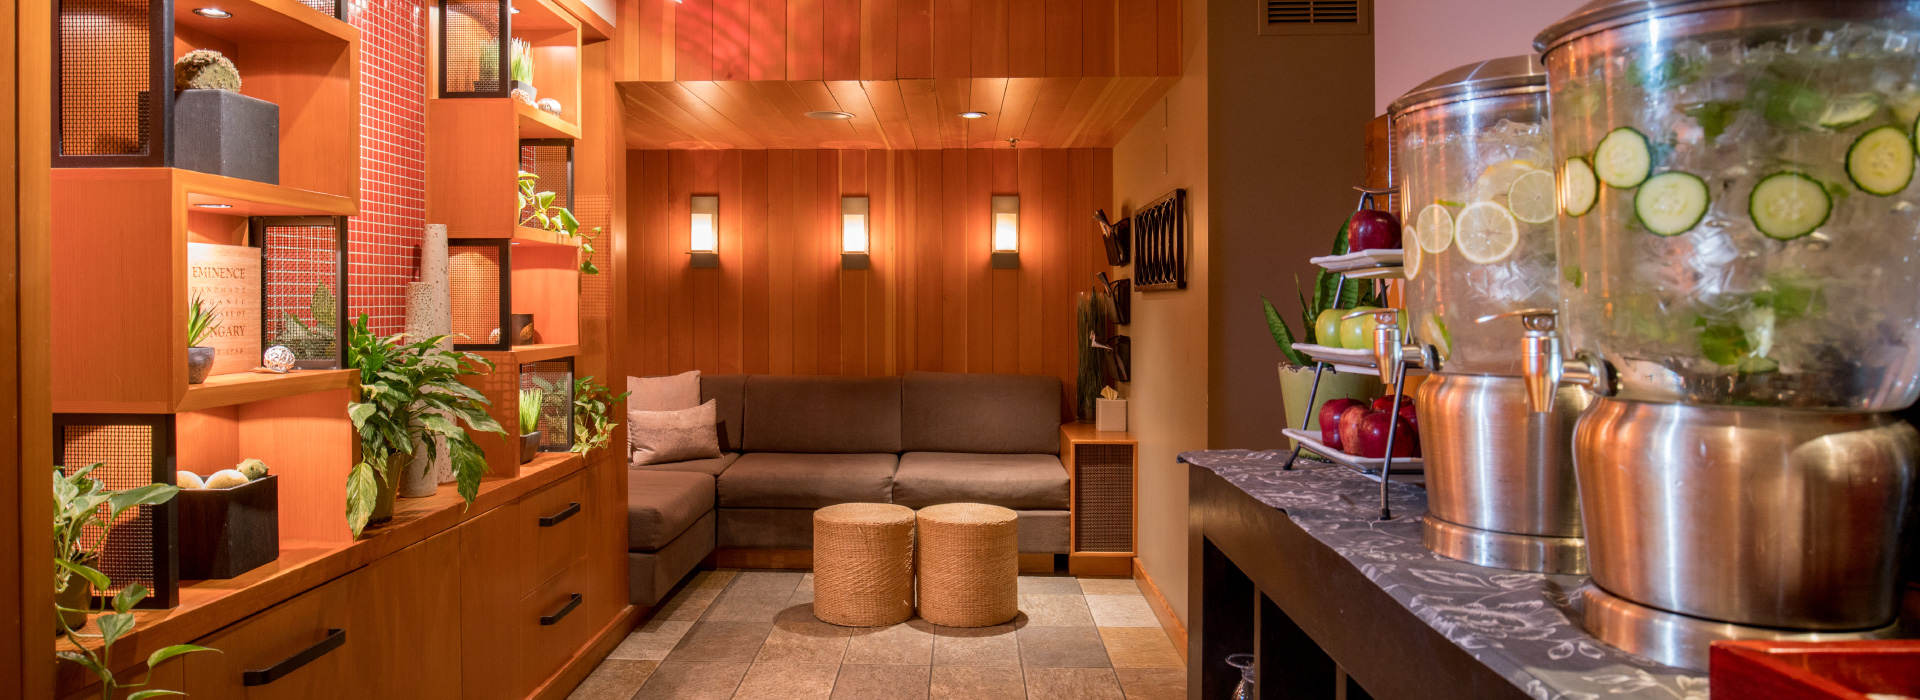 Red Earth Spa, Full Service Spa in The Banff Caribou Lodge